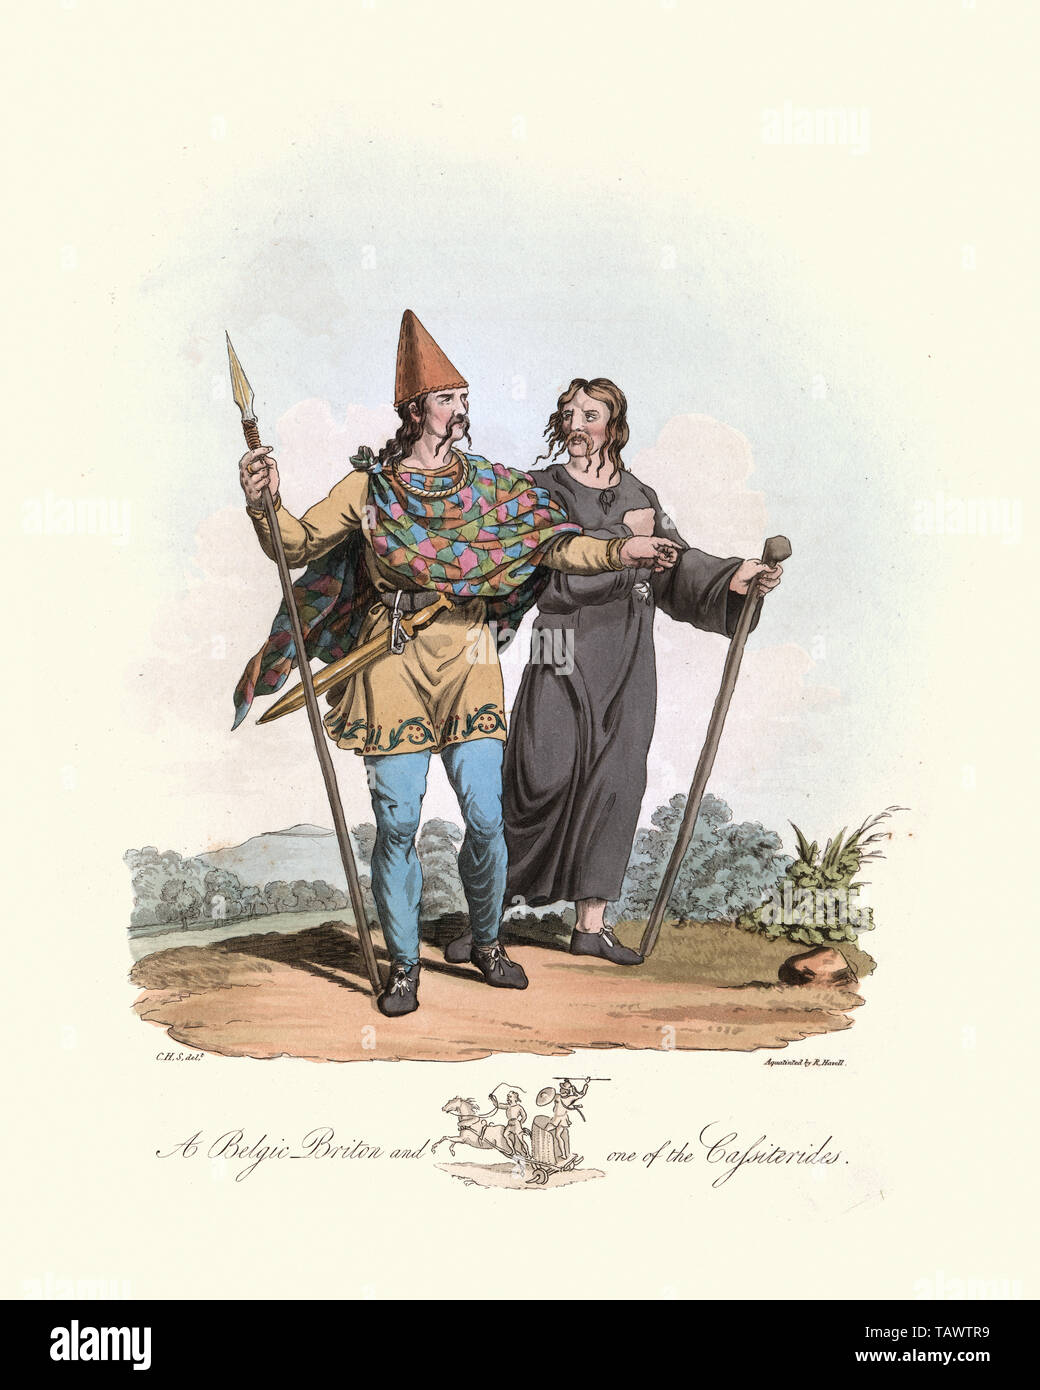 Begic Briton and one of the Cassiterides. 1815, The Costume of the Original Inhabitants of the British Islands, by MEYRICK, Samuel Rush and SMITH Char Stock Photo